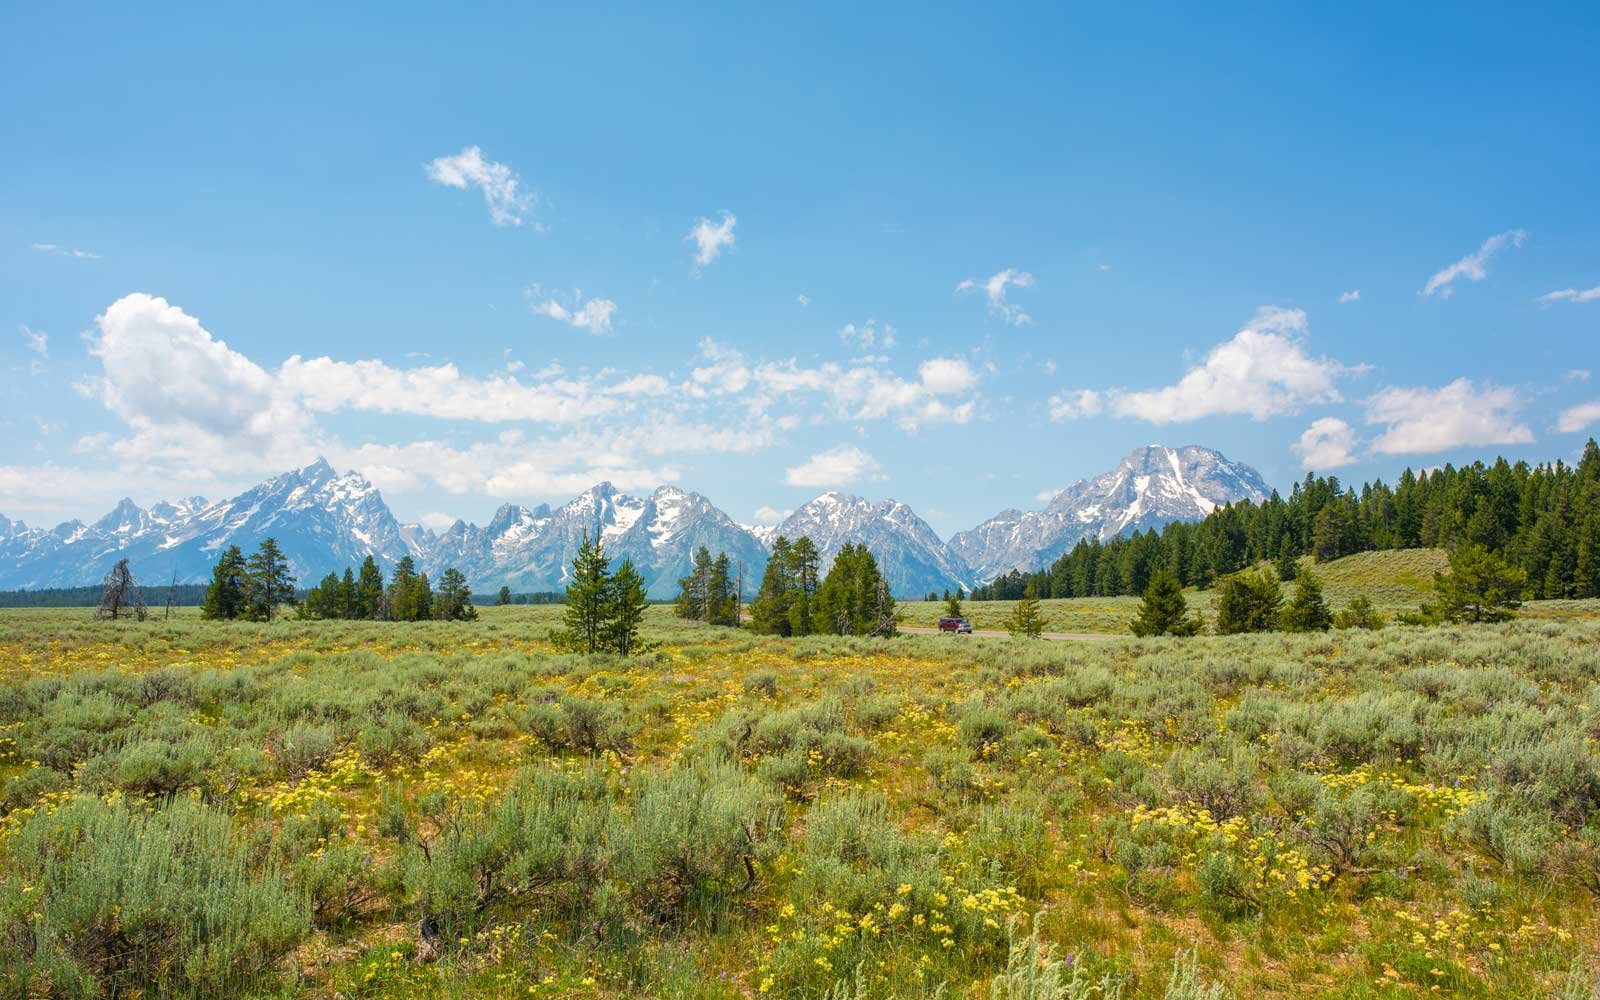 Jackson Hole, Wyoming - Grand Tetons Range